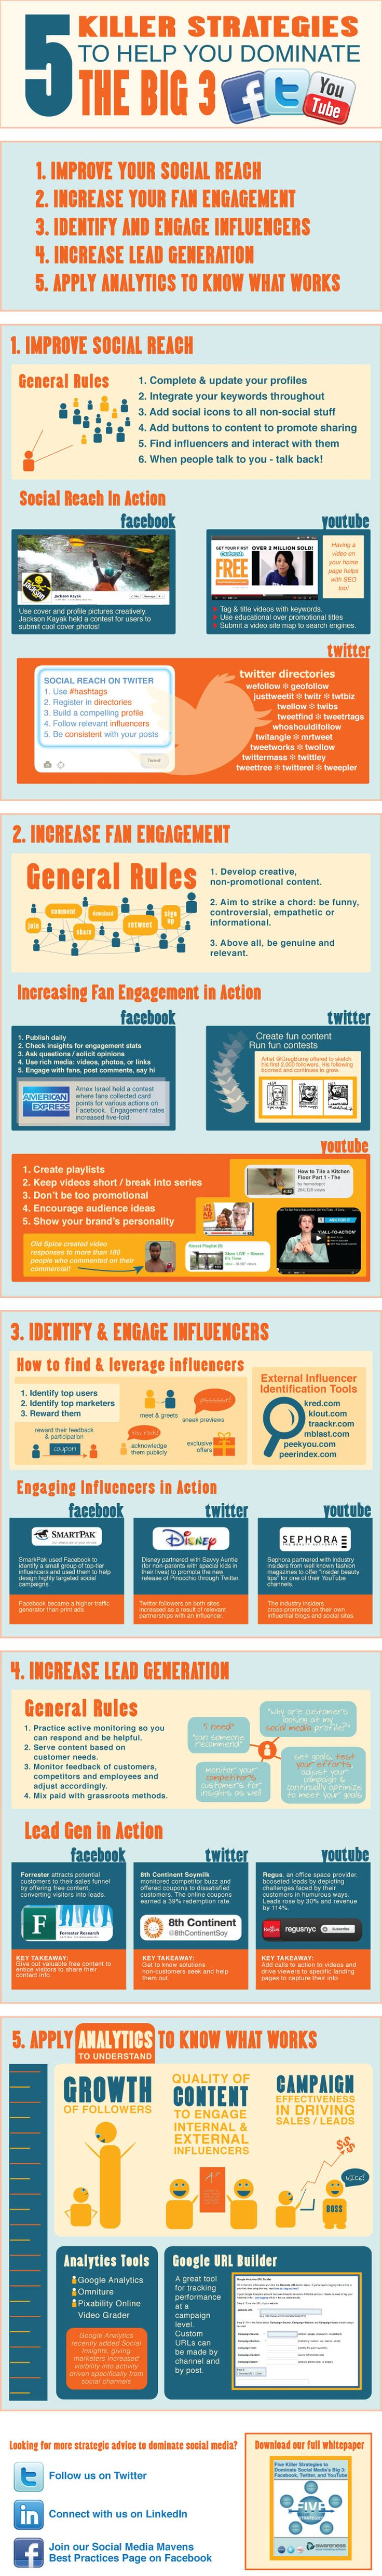 Big 3 (Facebook, Twitter, YouTube) Infographic - Our latest whitepaper, 5 Killer Strategies to Dominate Social Media's Big 3: Facebook, Twitter and YouTube, serves as a best practice guide for marketers. We examine each platform and share five strategies marketers can apply to guarantee success for increasing brand awareness, fostering brand advocacy and generating leads and sales. Use this infographic as a quick-start guide for social marketing on the Big 3!